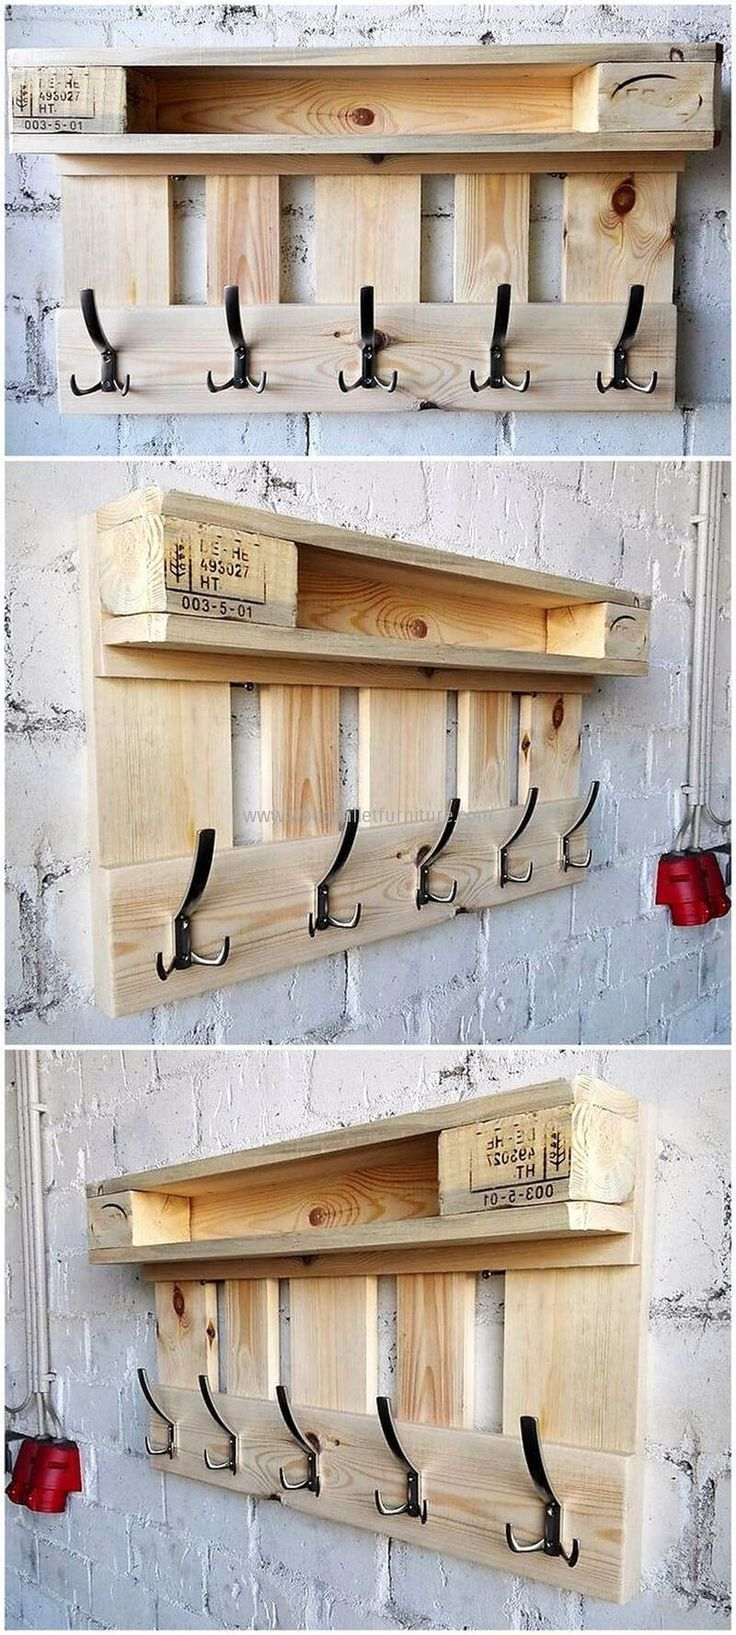 repurposed pallet hanger idea. #diyprojects #diyideas #diyinspiration #diycrafts...